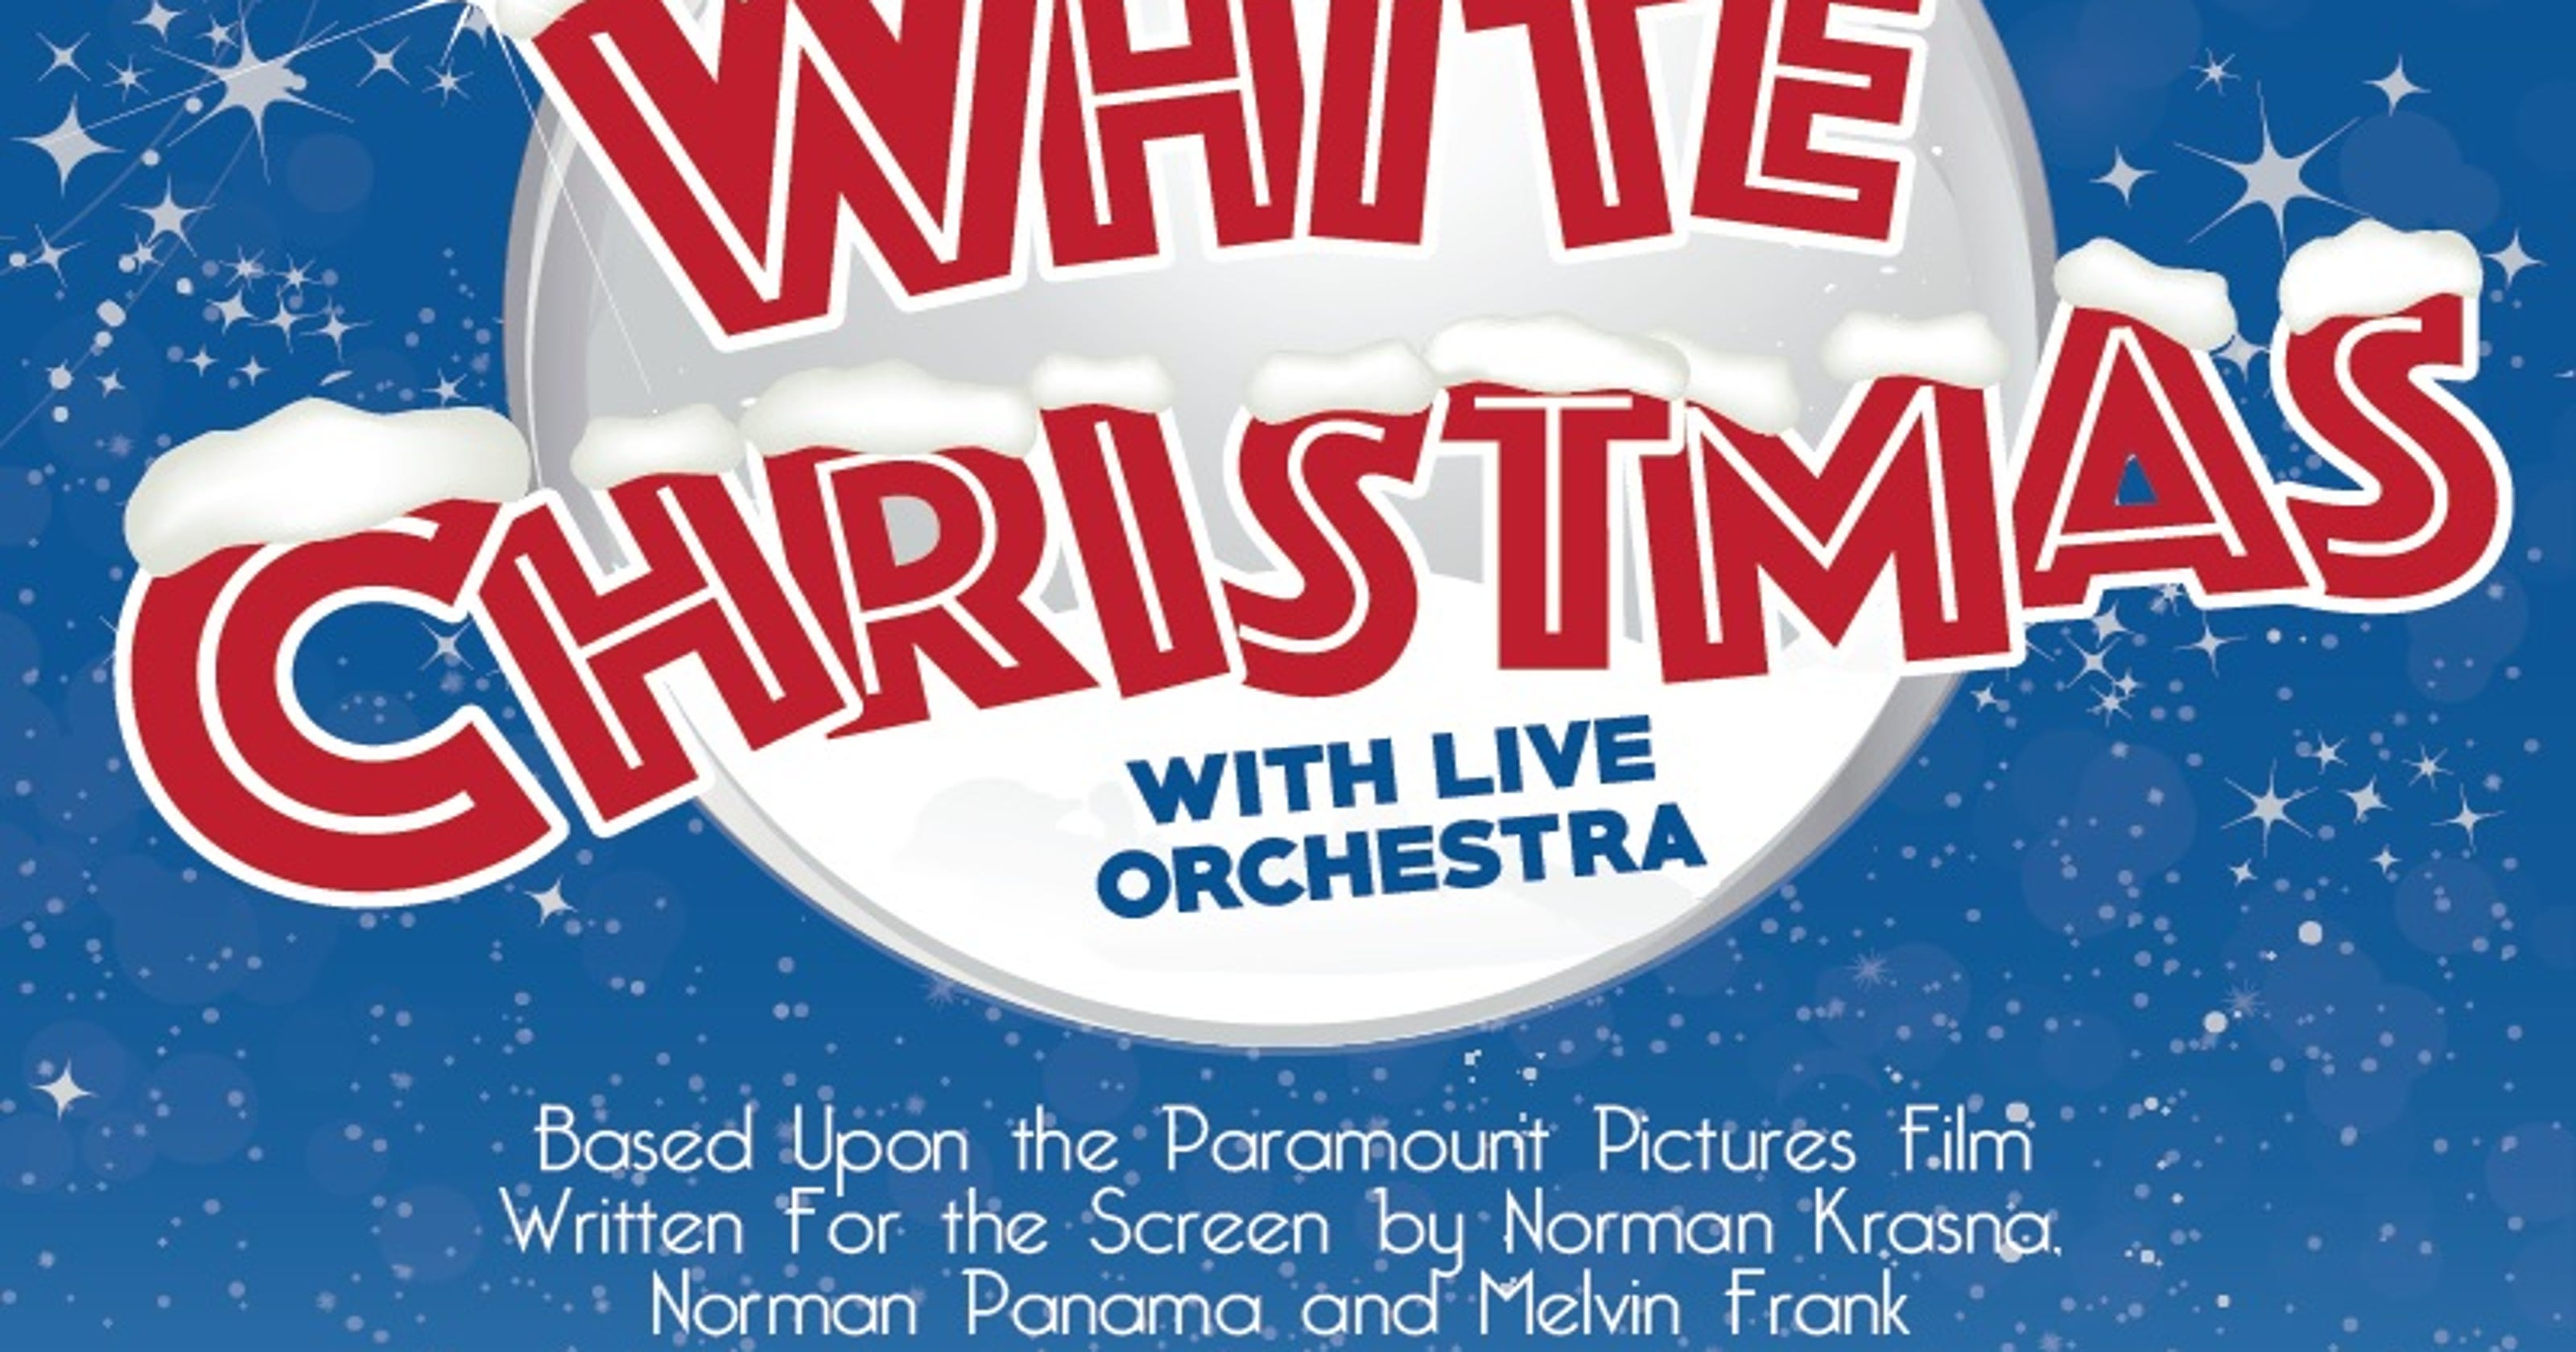 the white time to be in abilene - When Was White Christmas Written